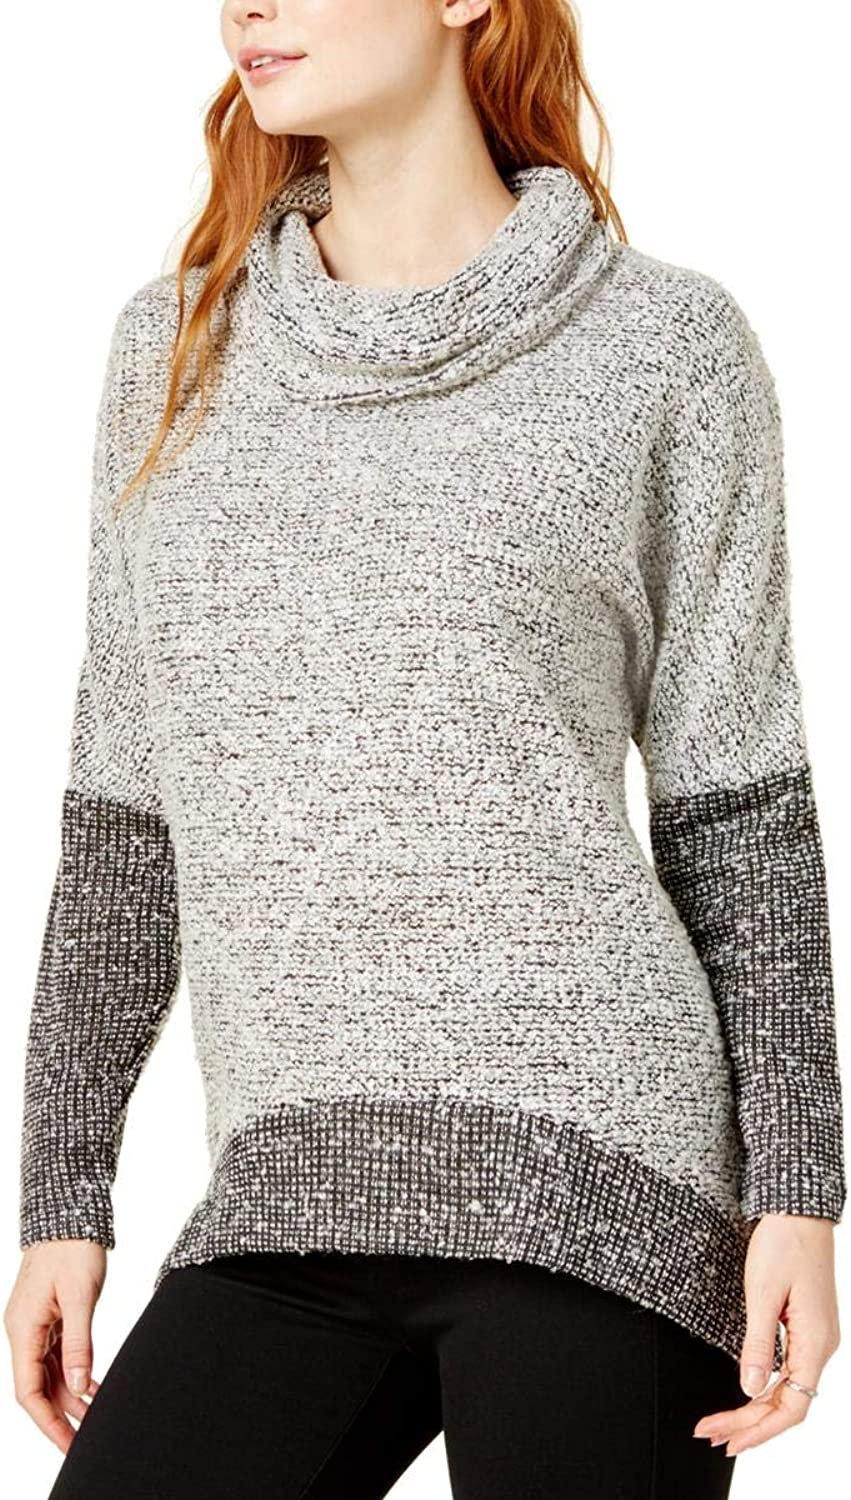 Bar Iii Womens colorblocked Knit Sweater